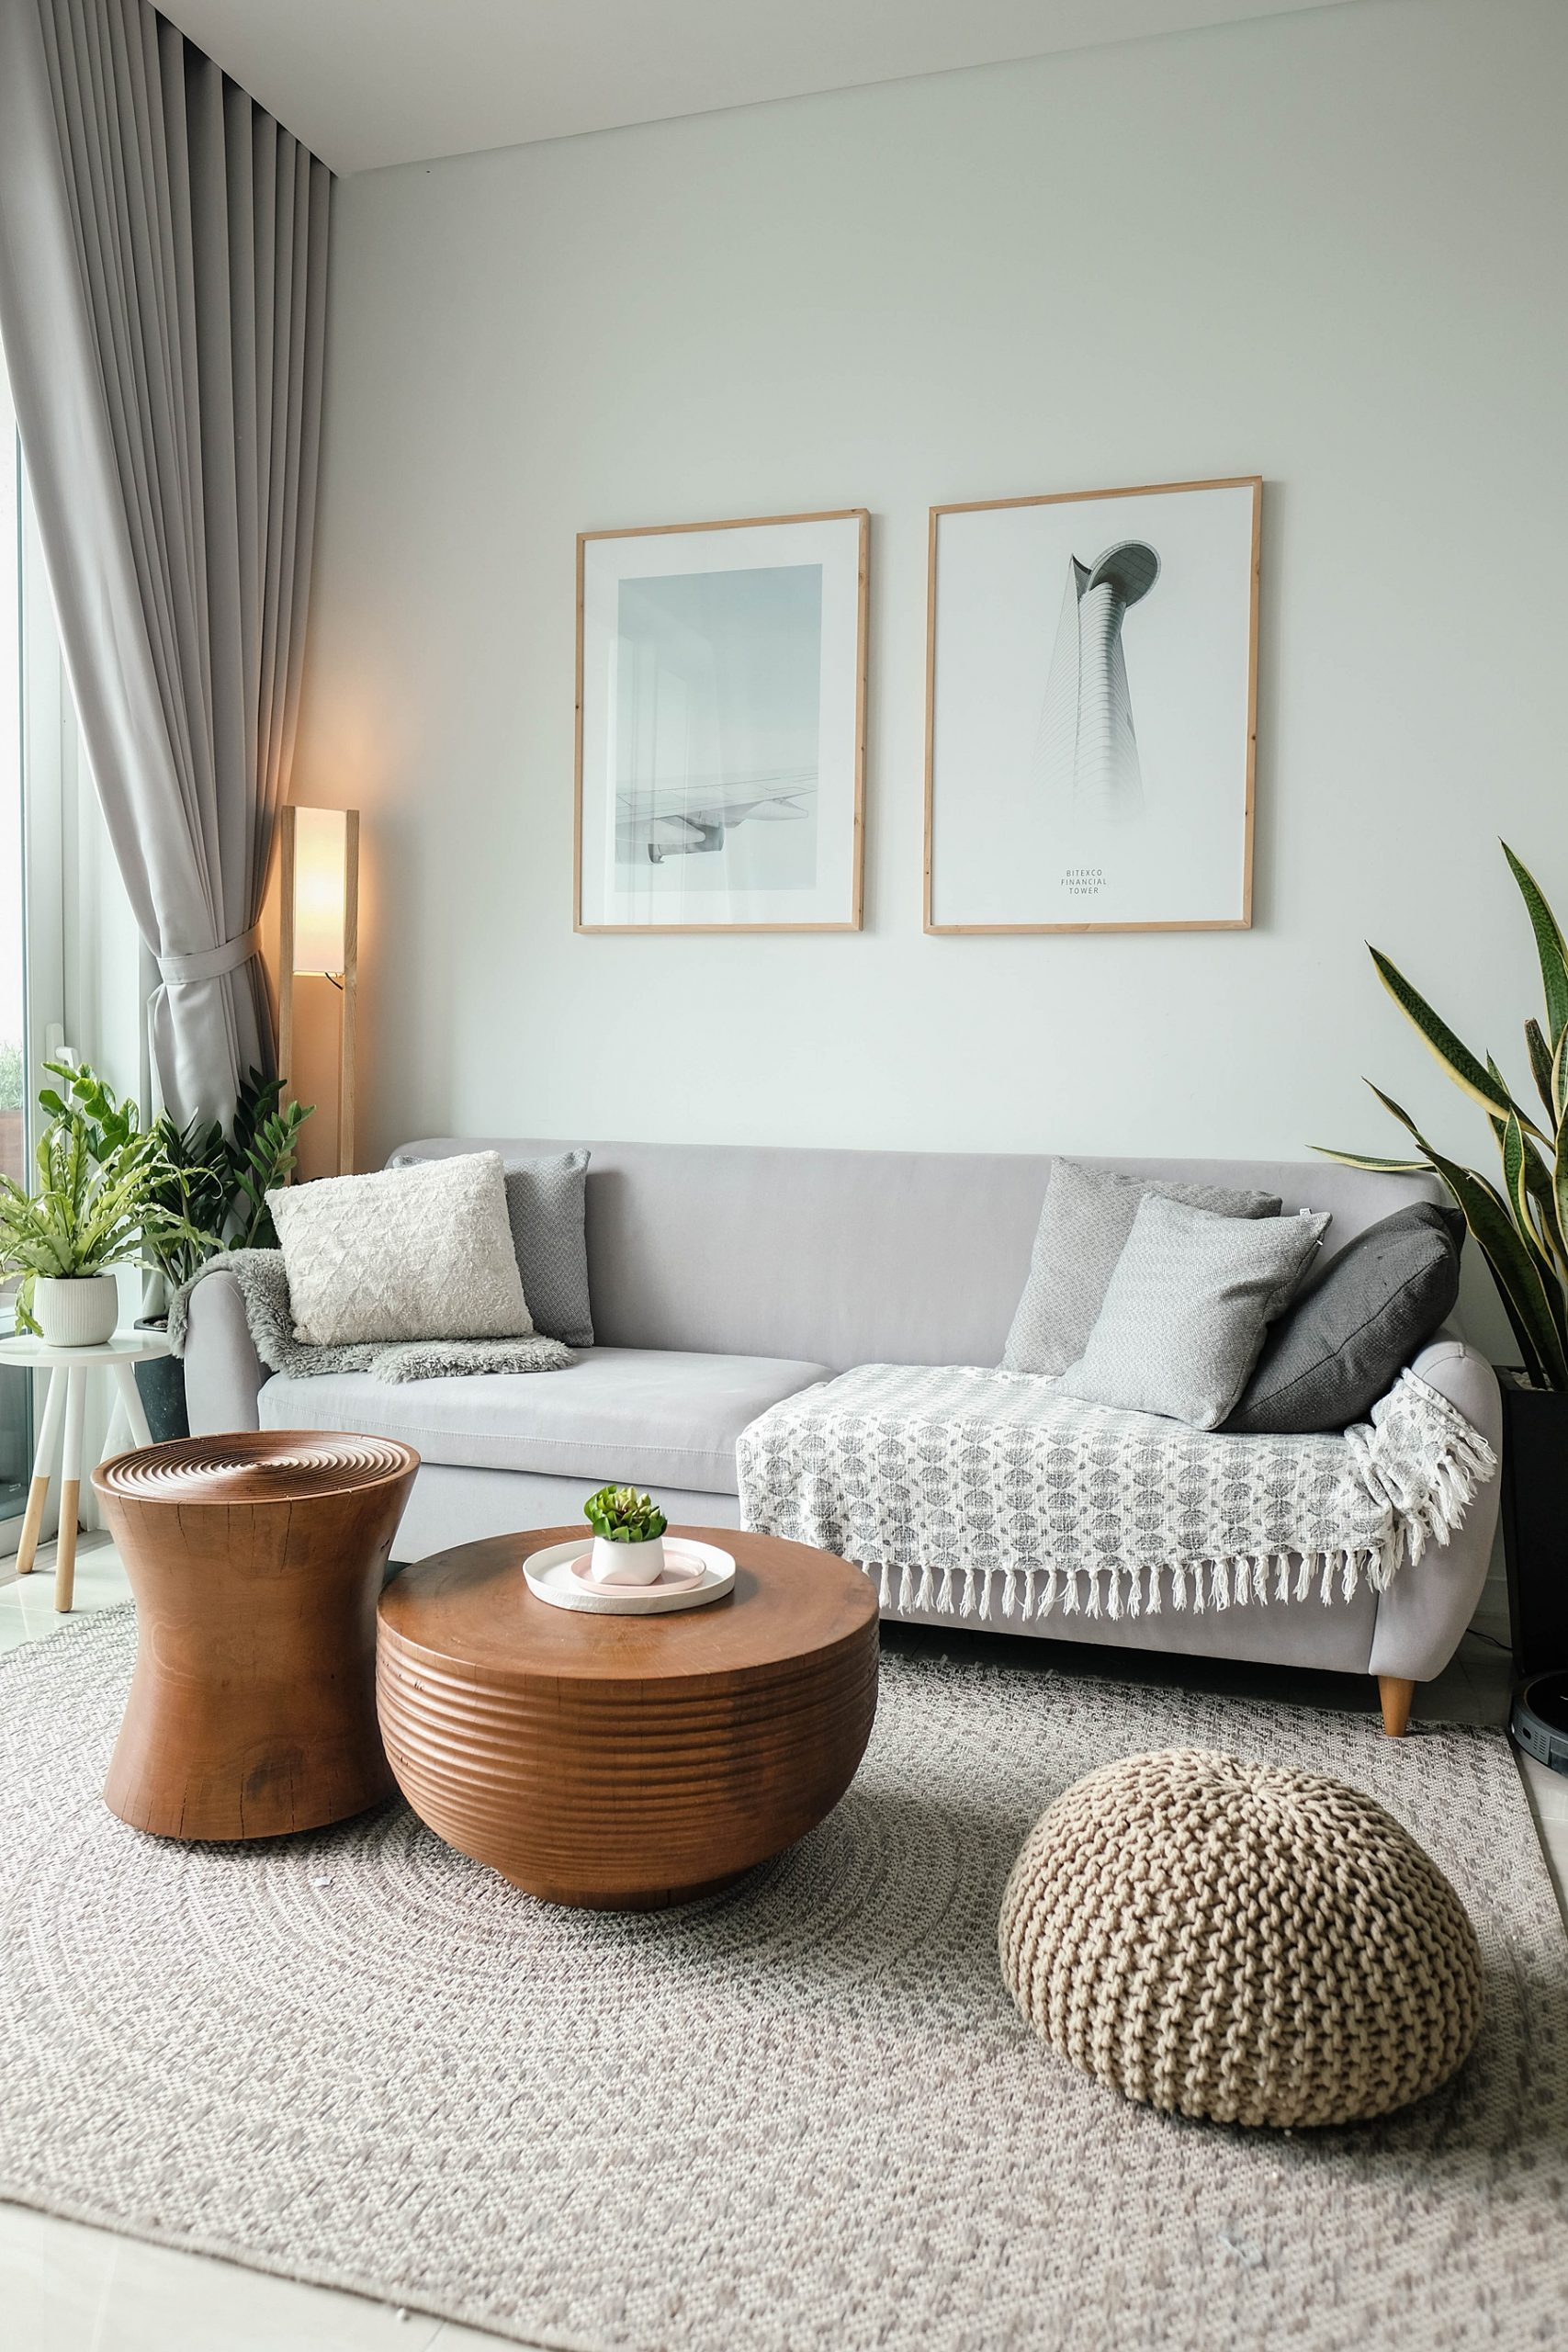 Sitting area with neutral colors and light wood tones and other modern design elements